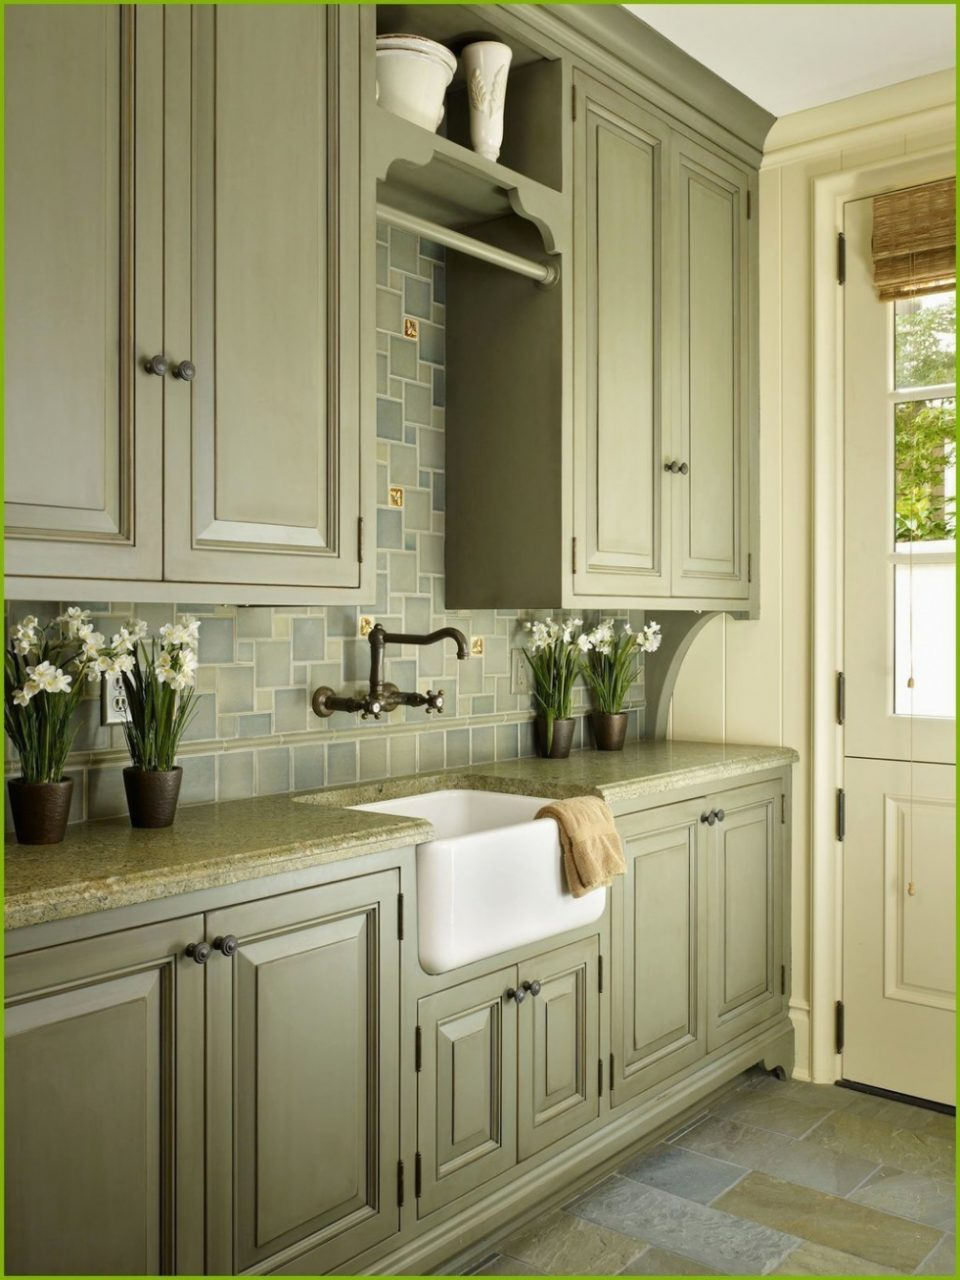 White Kitchen Cabinets Sage Green Walls Kitchen Cabinet Ideas